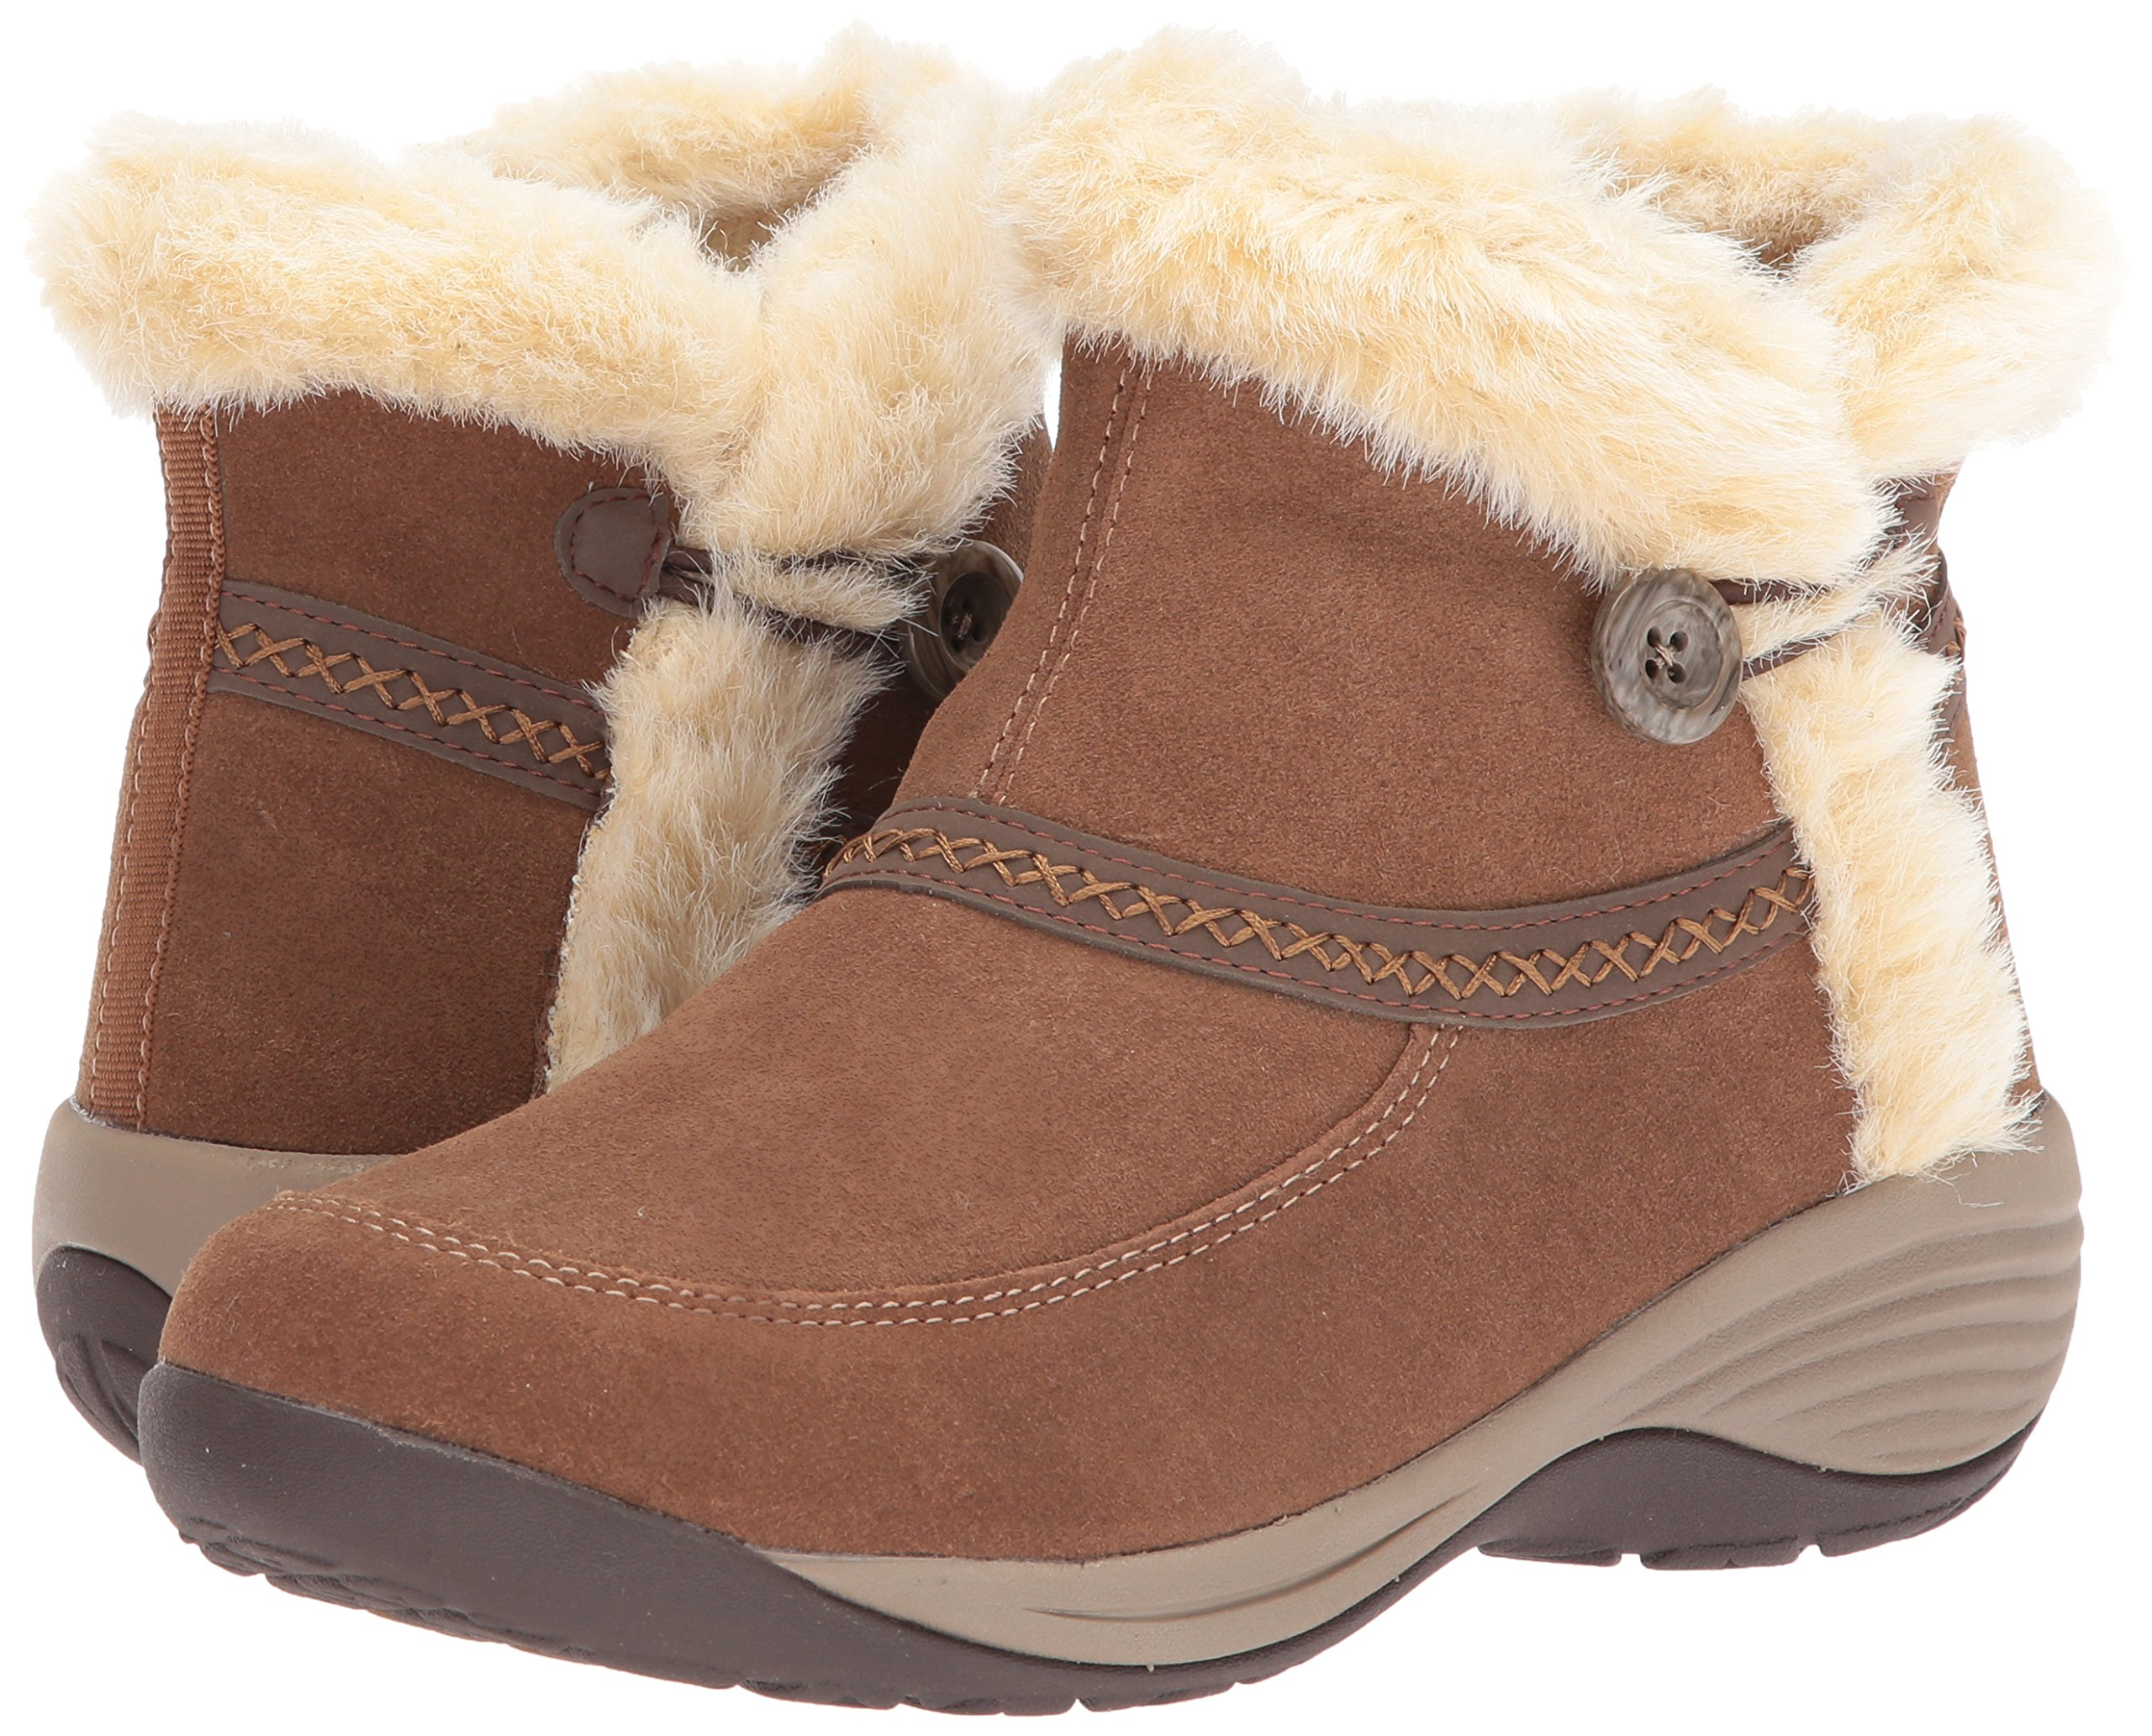 Easy Spirit Women's Icerink Ankle Bootie, Dark Natural Multi Suede, 6 W US by Easy Spirit (Image #6)